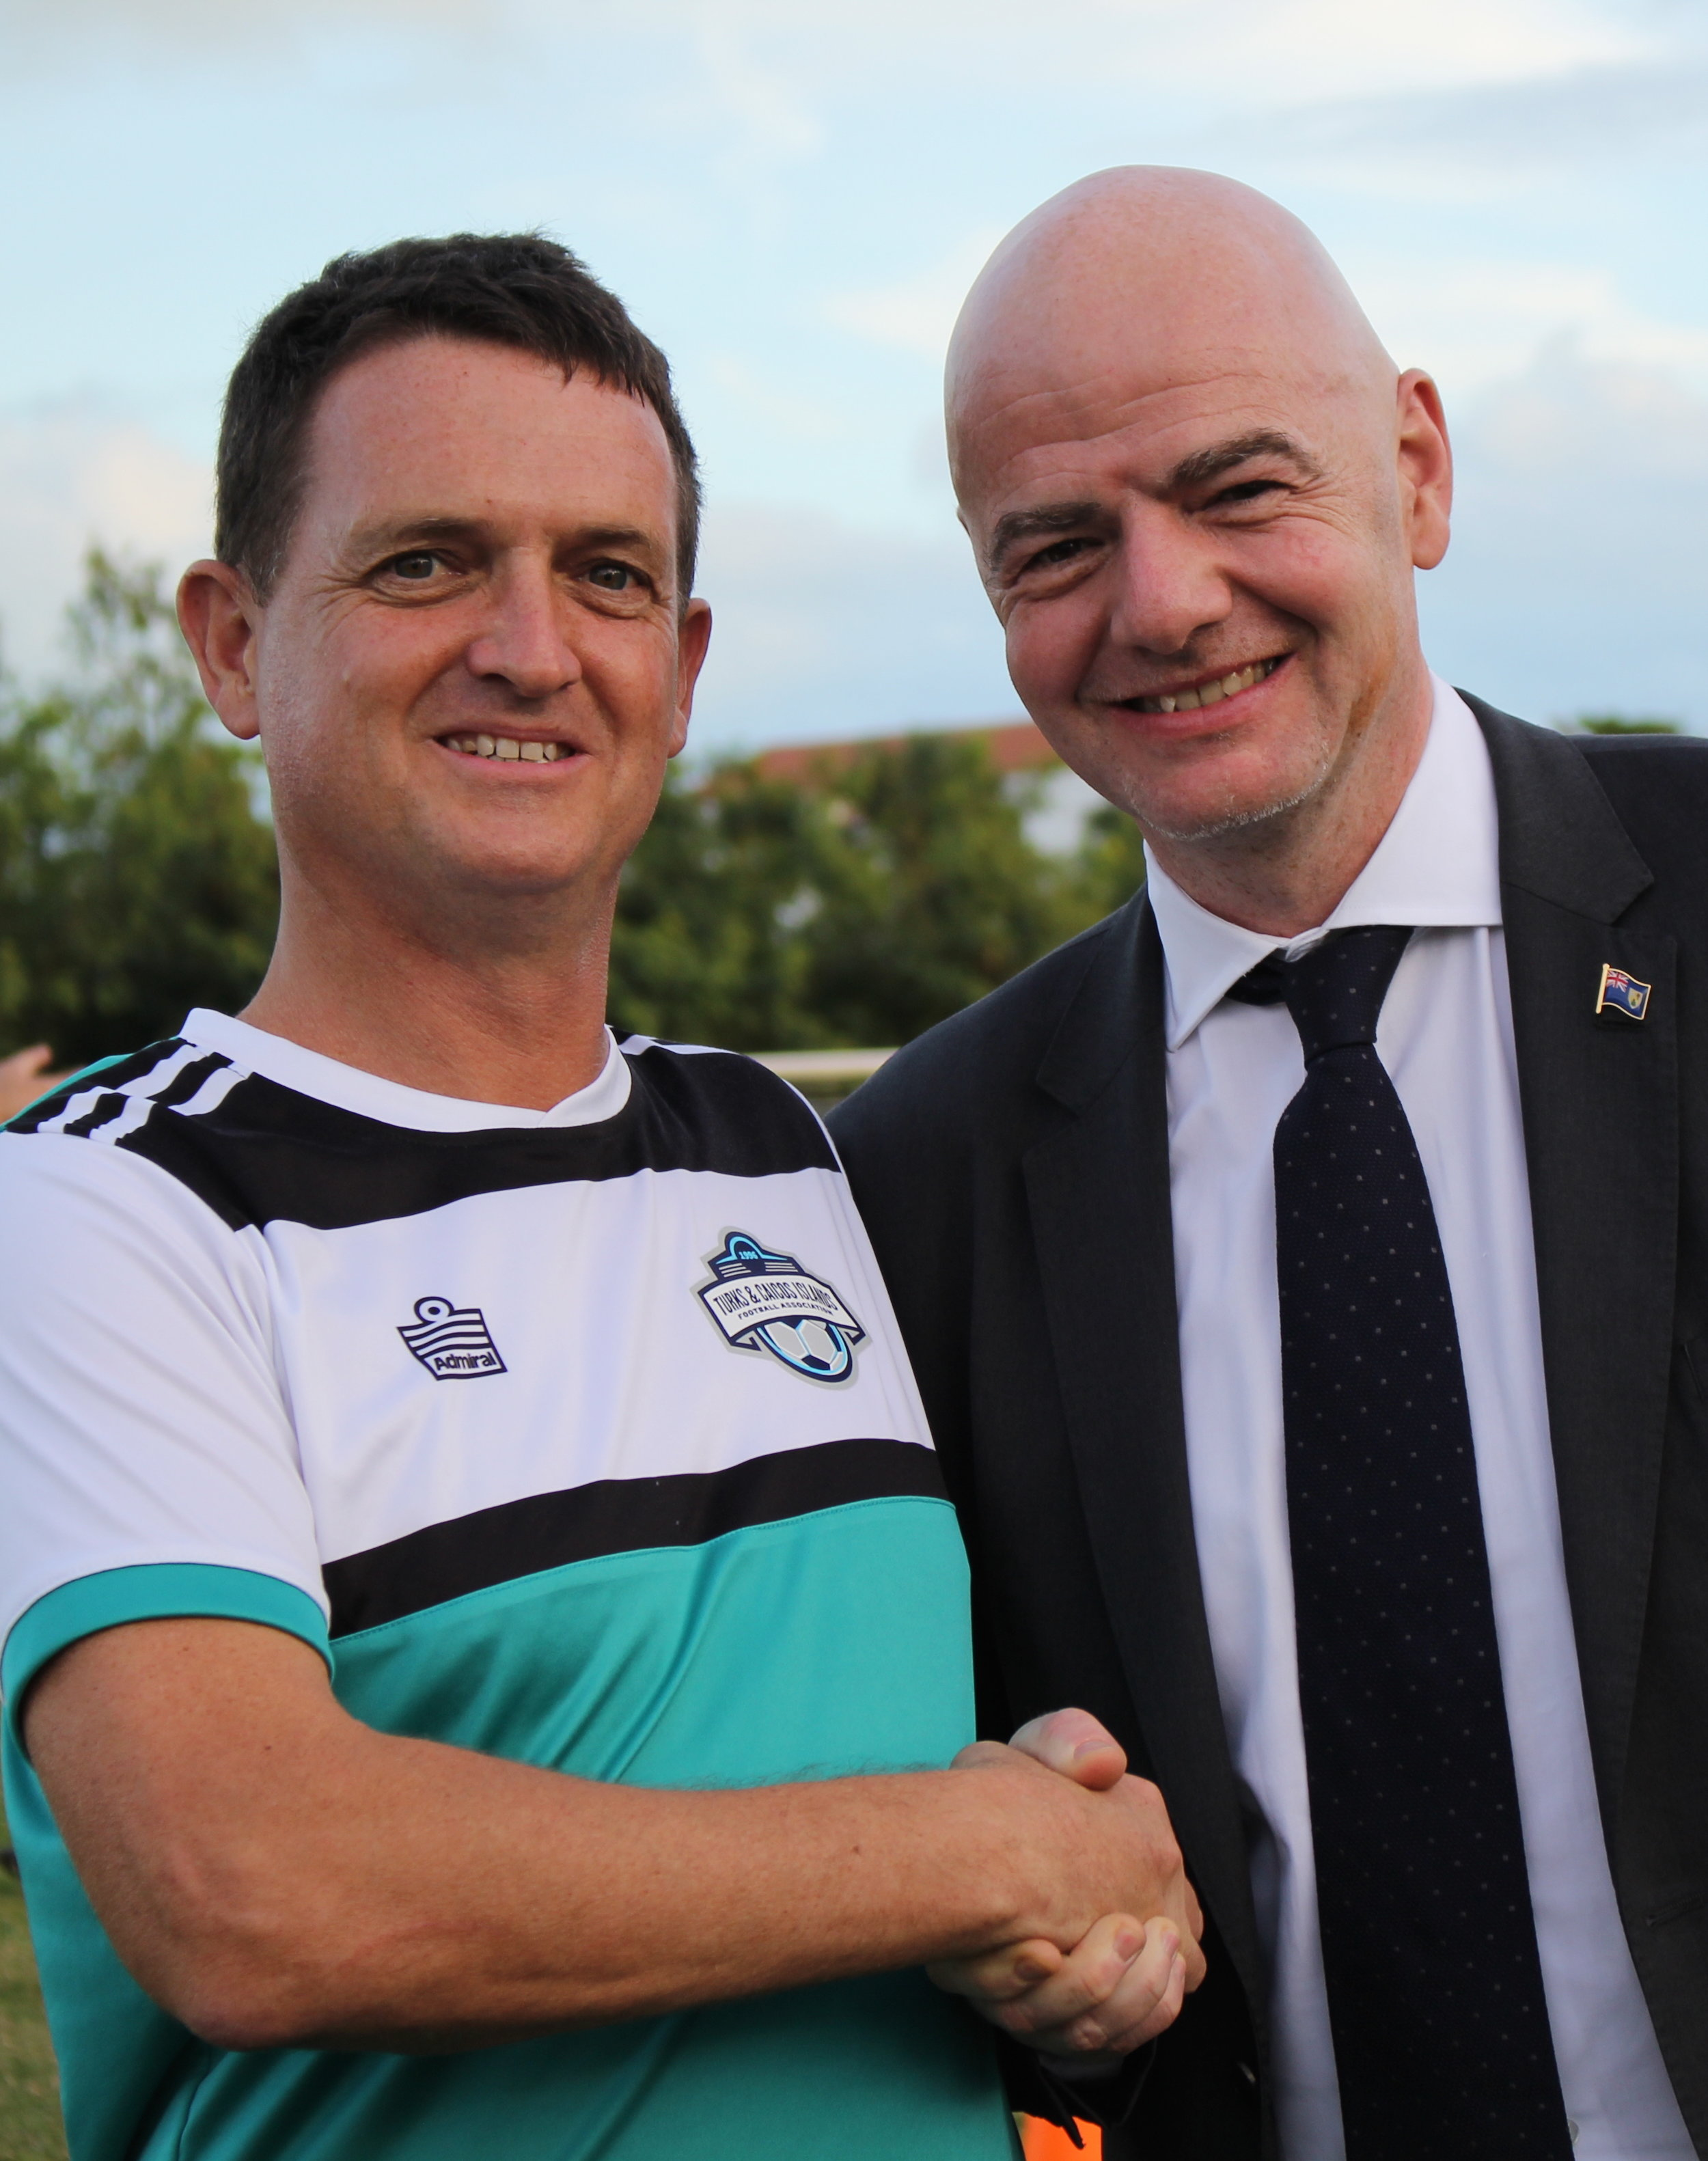 (L-R) PPL President and TCIFA Executive Director Steve Kendrew and FIFA President Gianni Infantino